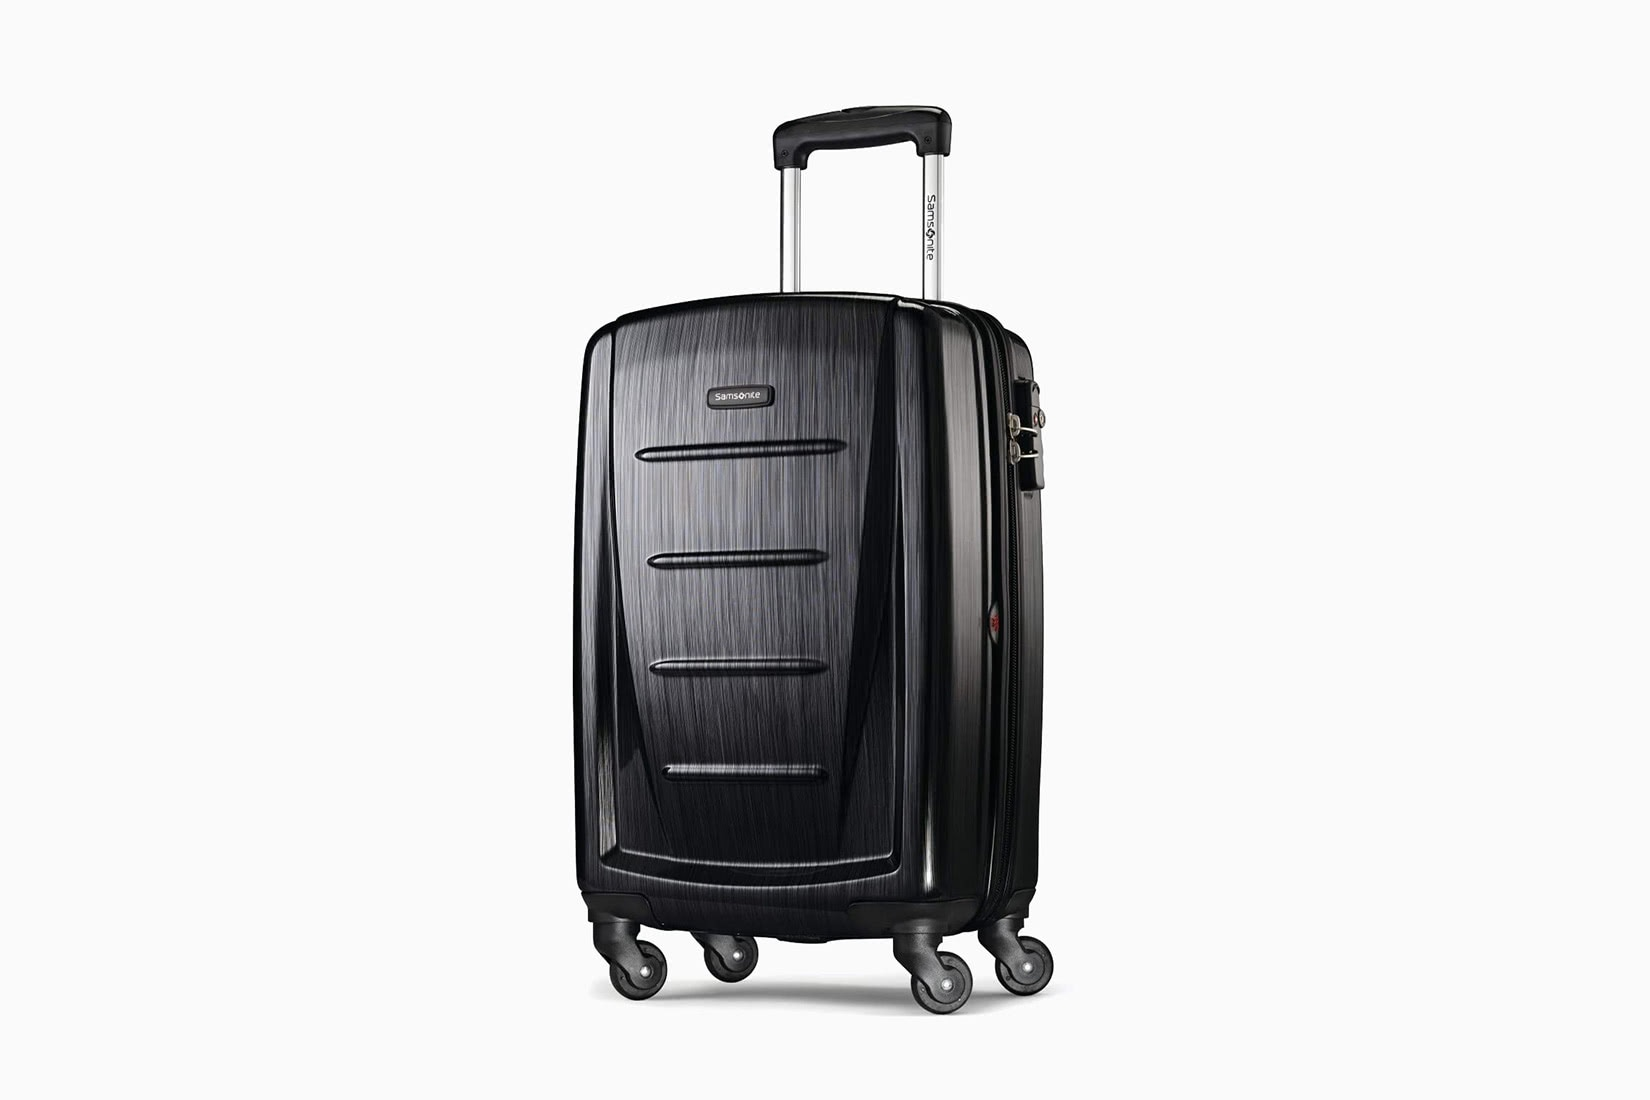 best carry-on suitcase travel samsonite under 100 - Luxe Digital